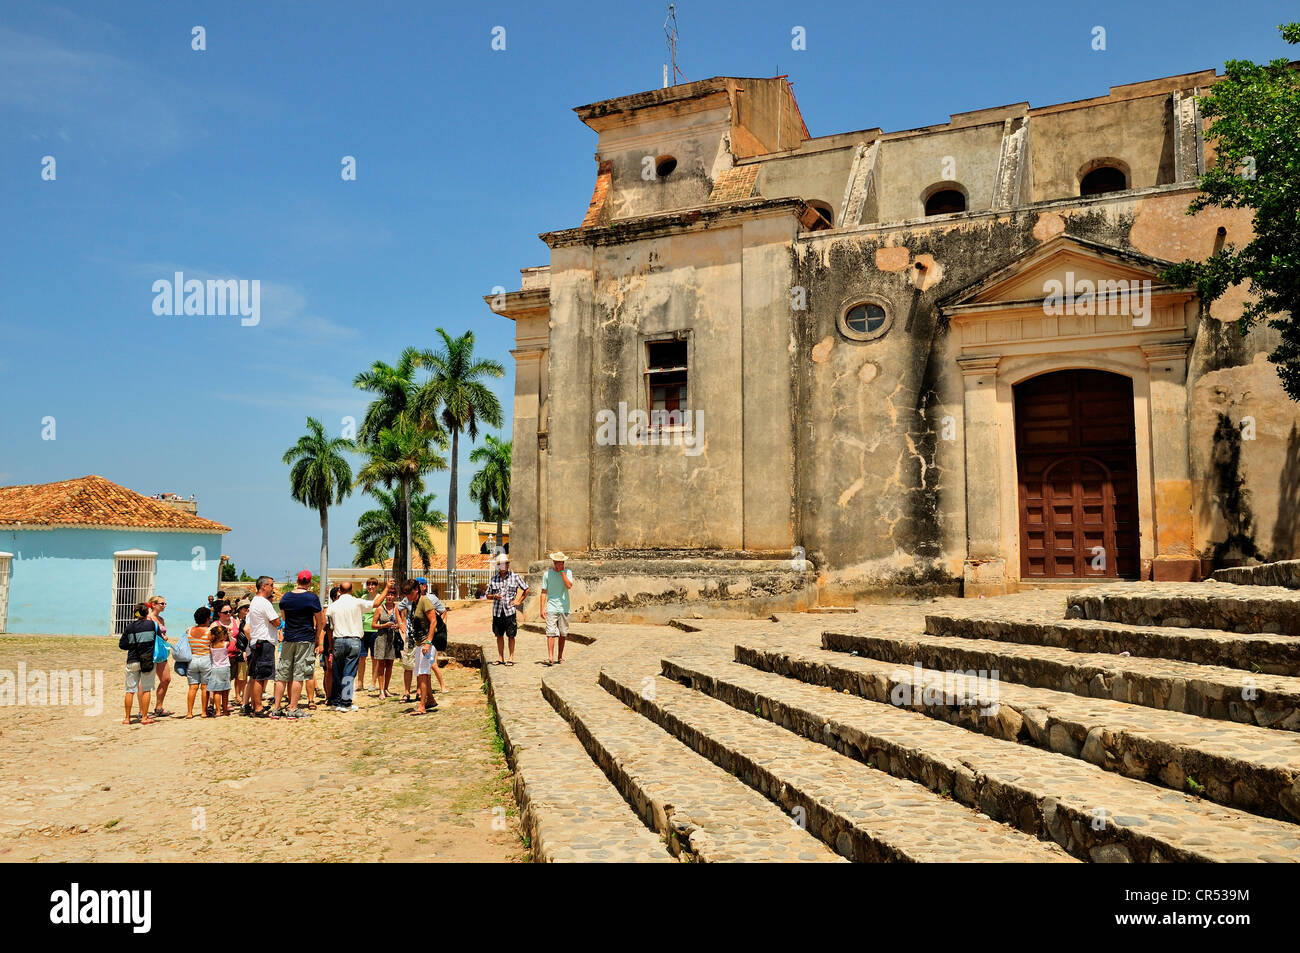 Group of tourists in front of Iglesia Parroquial de la Santísima, Church of the Holy Trinity, Trinidad, Cuba, - Stock Image